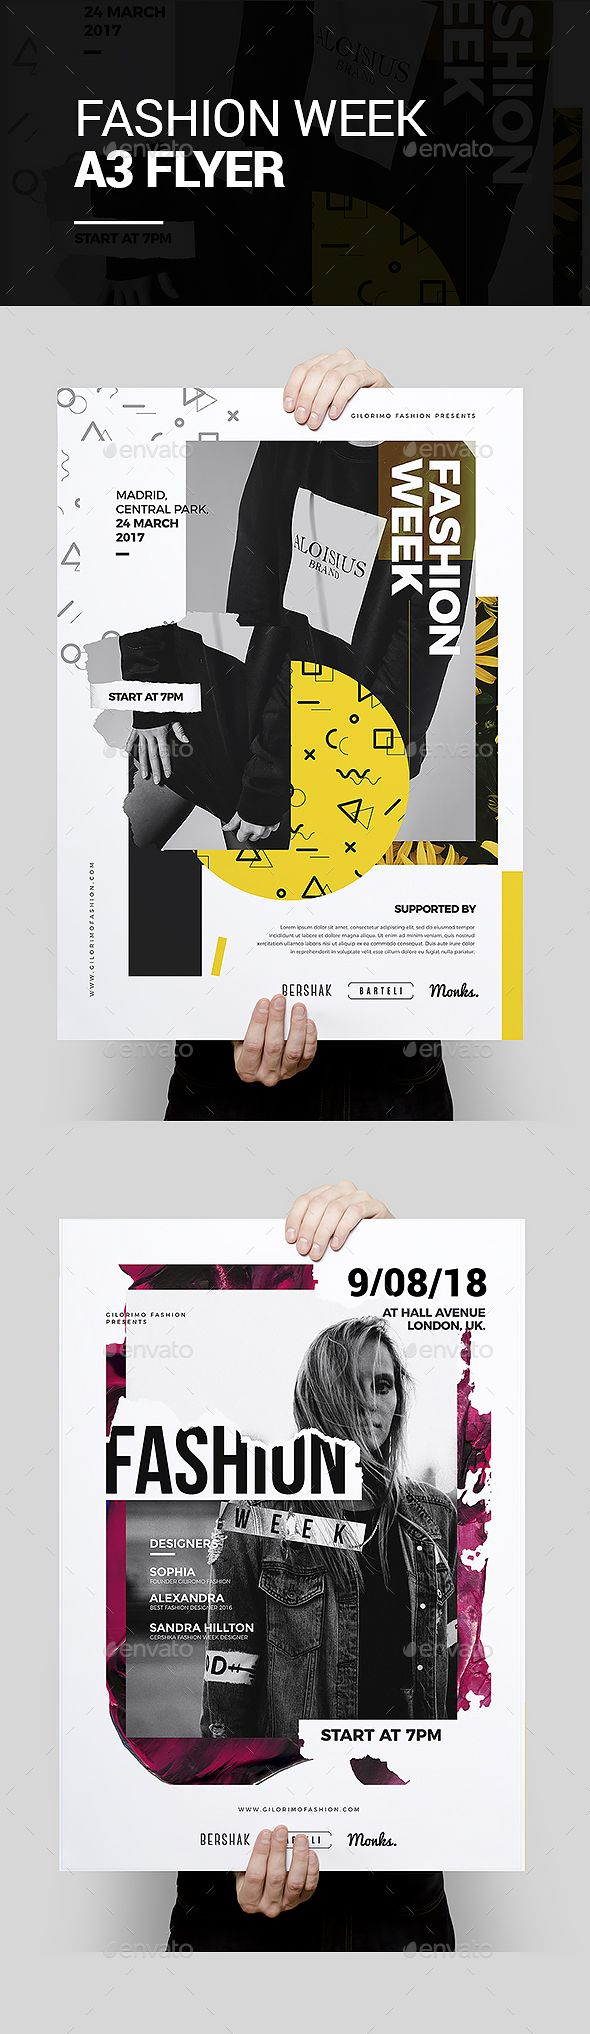 Fashion Week Flyer Poster Template #promotion #corporate  • Download here → https://graphicriver.net/item/fashion-week-flyer-poster-template/21218506?ref=pxcr